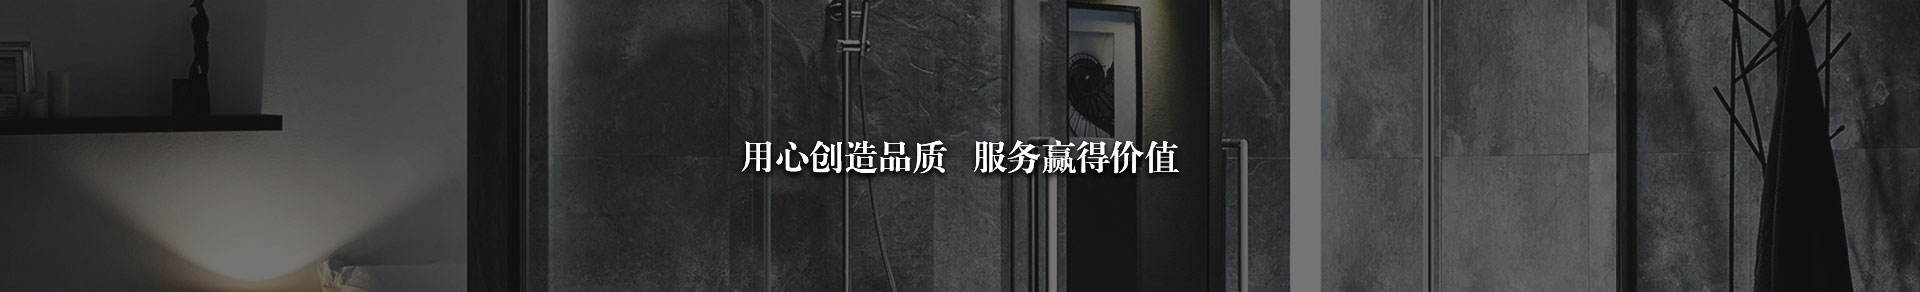 http://www.liaochenglianyou.com/data/upload/201908/20190816123450_929.jpg